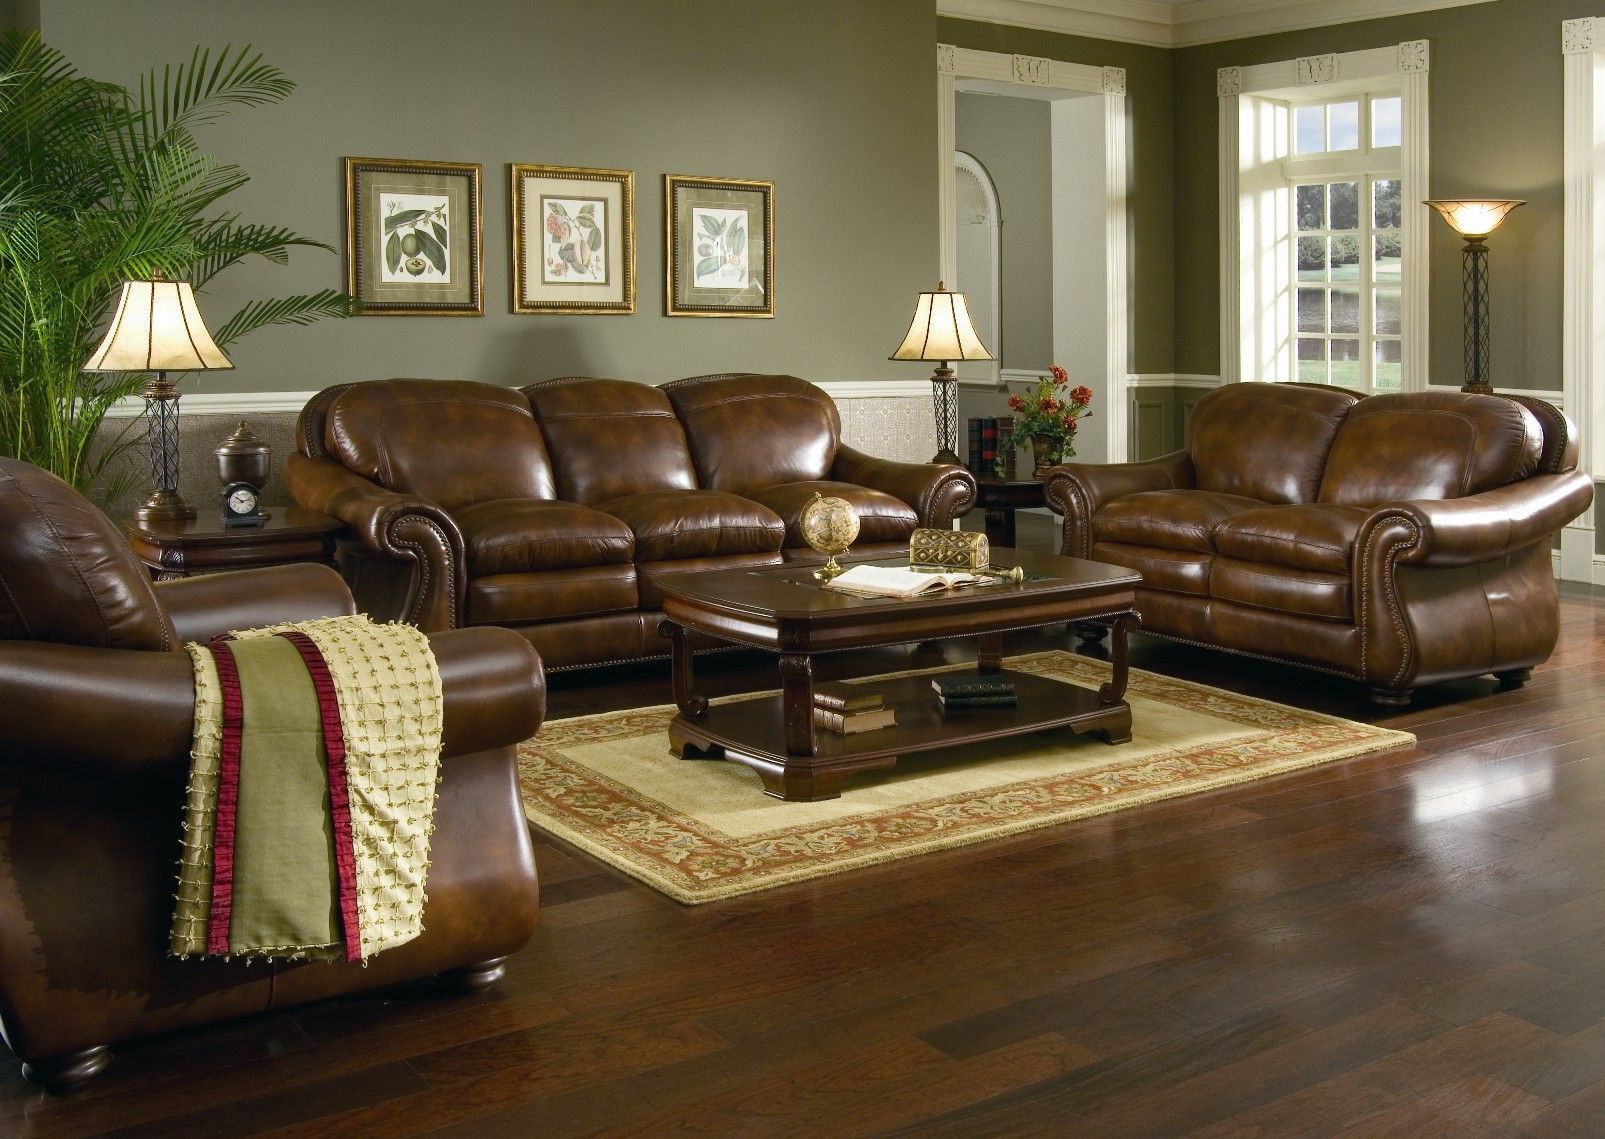 Living Room Color Ideas Brown Sofa brown leather sofa set for living room with dark hardwood floors